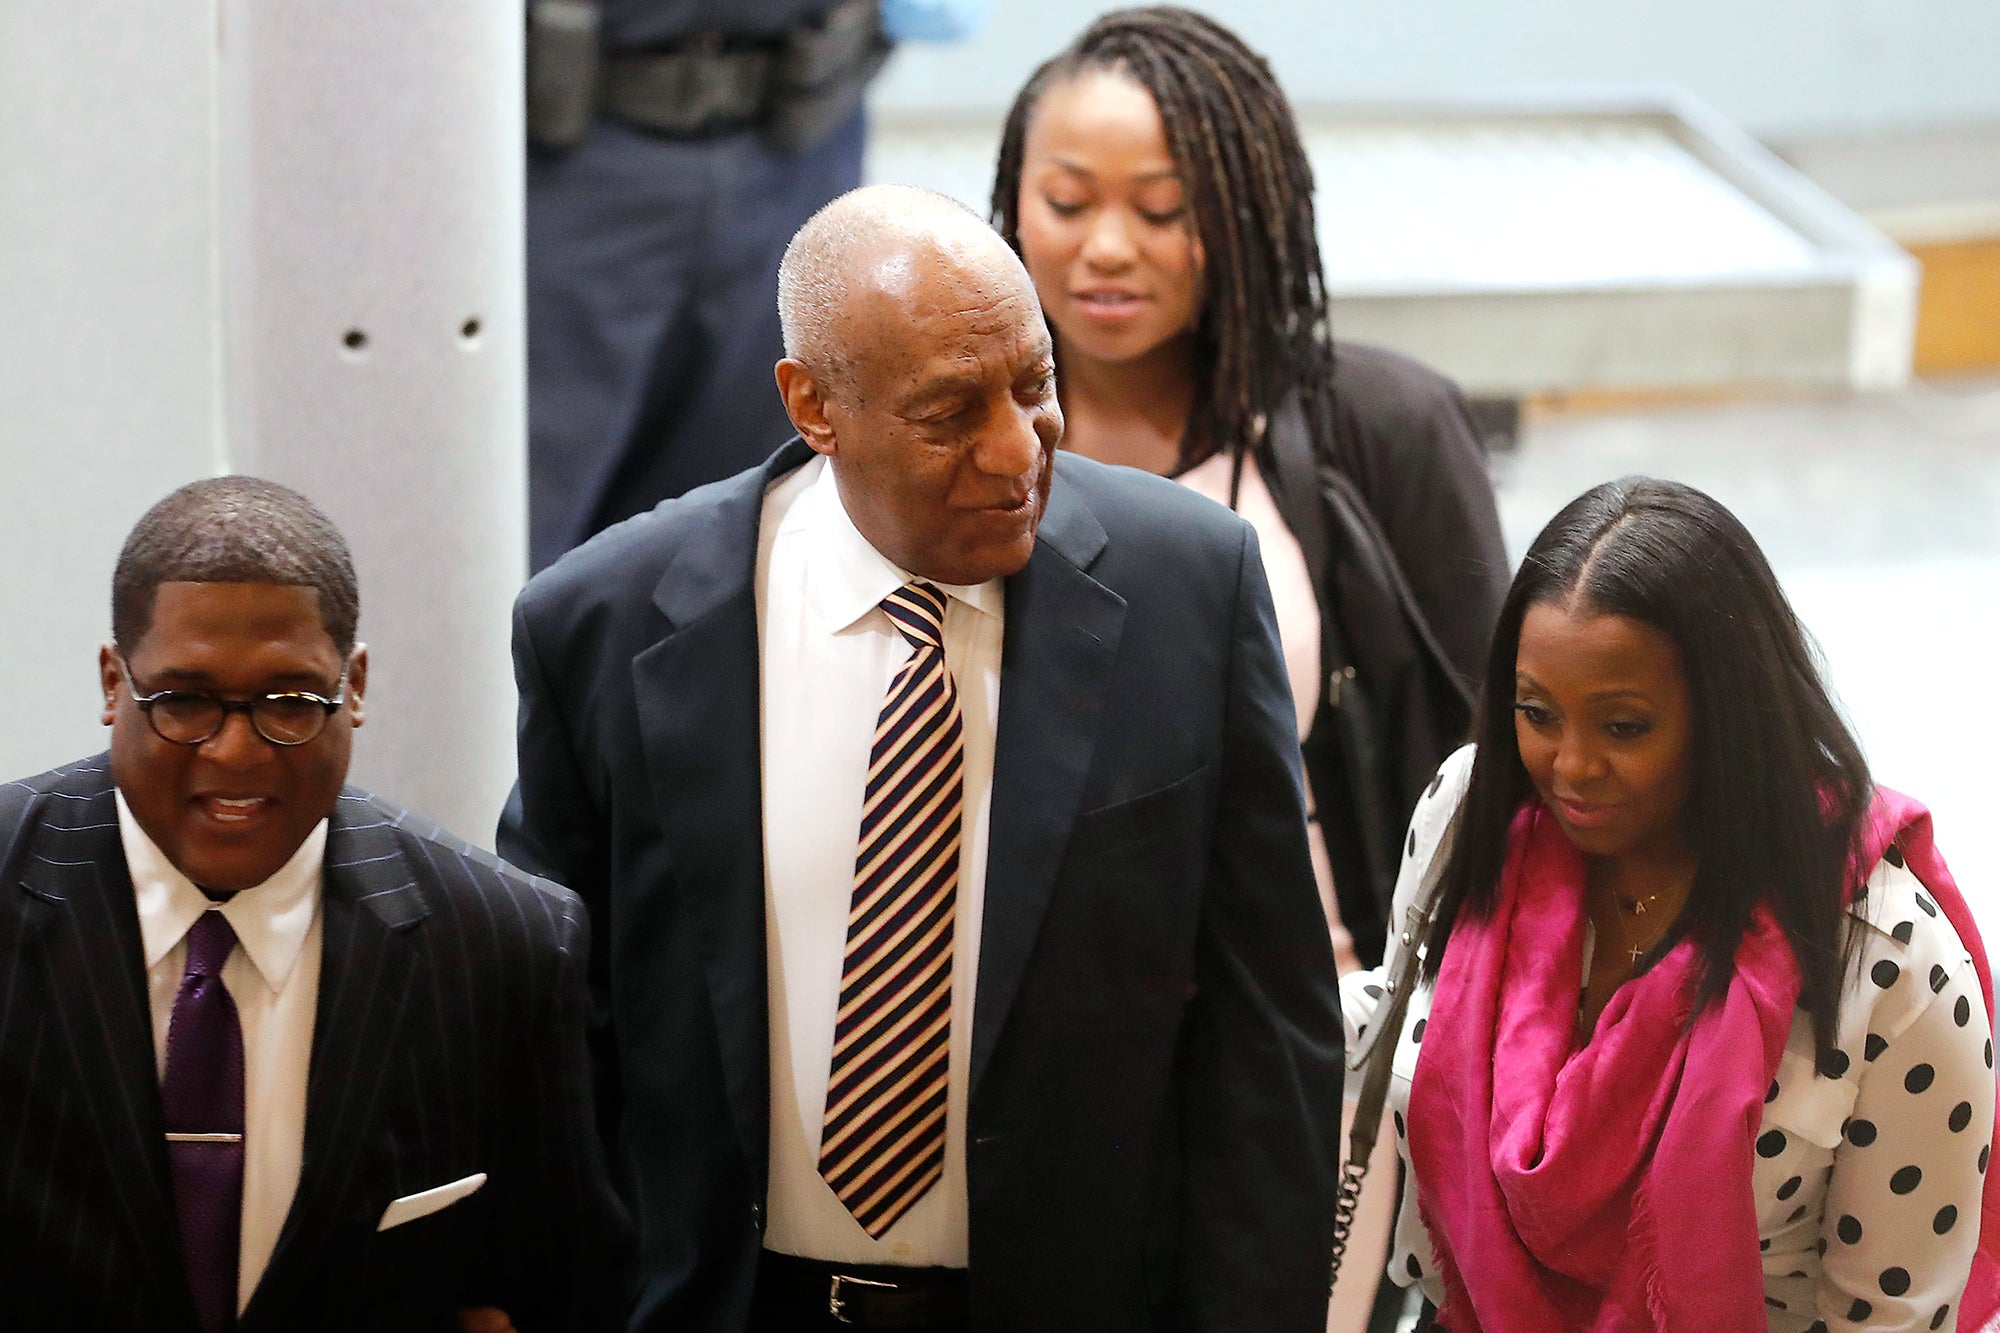 Keshia Knight Pulliam Explains Her Support Of Bill Cosby